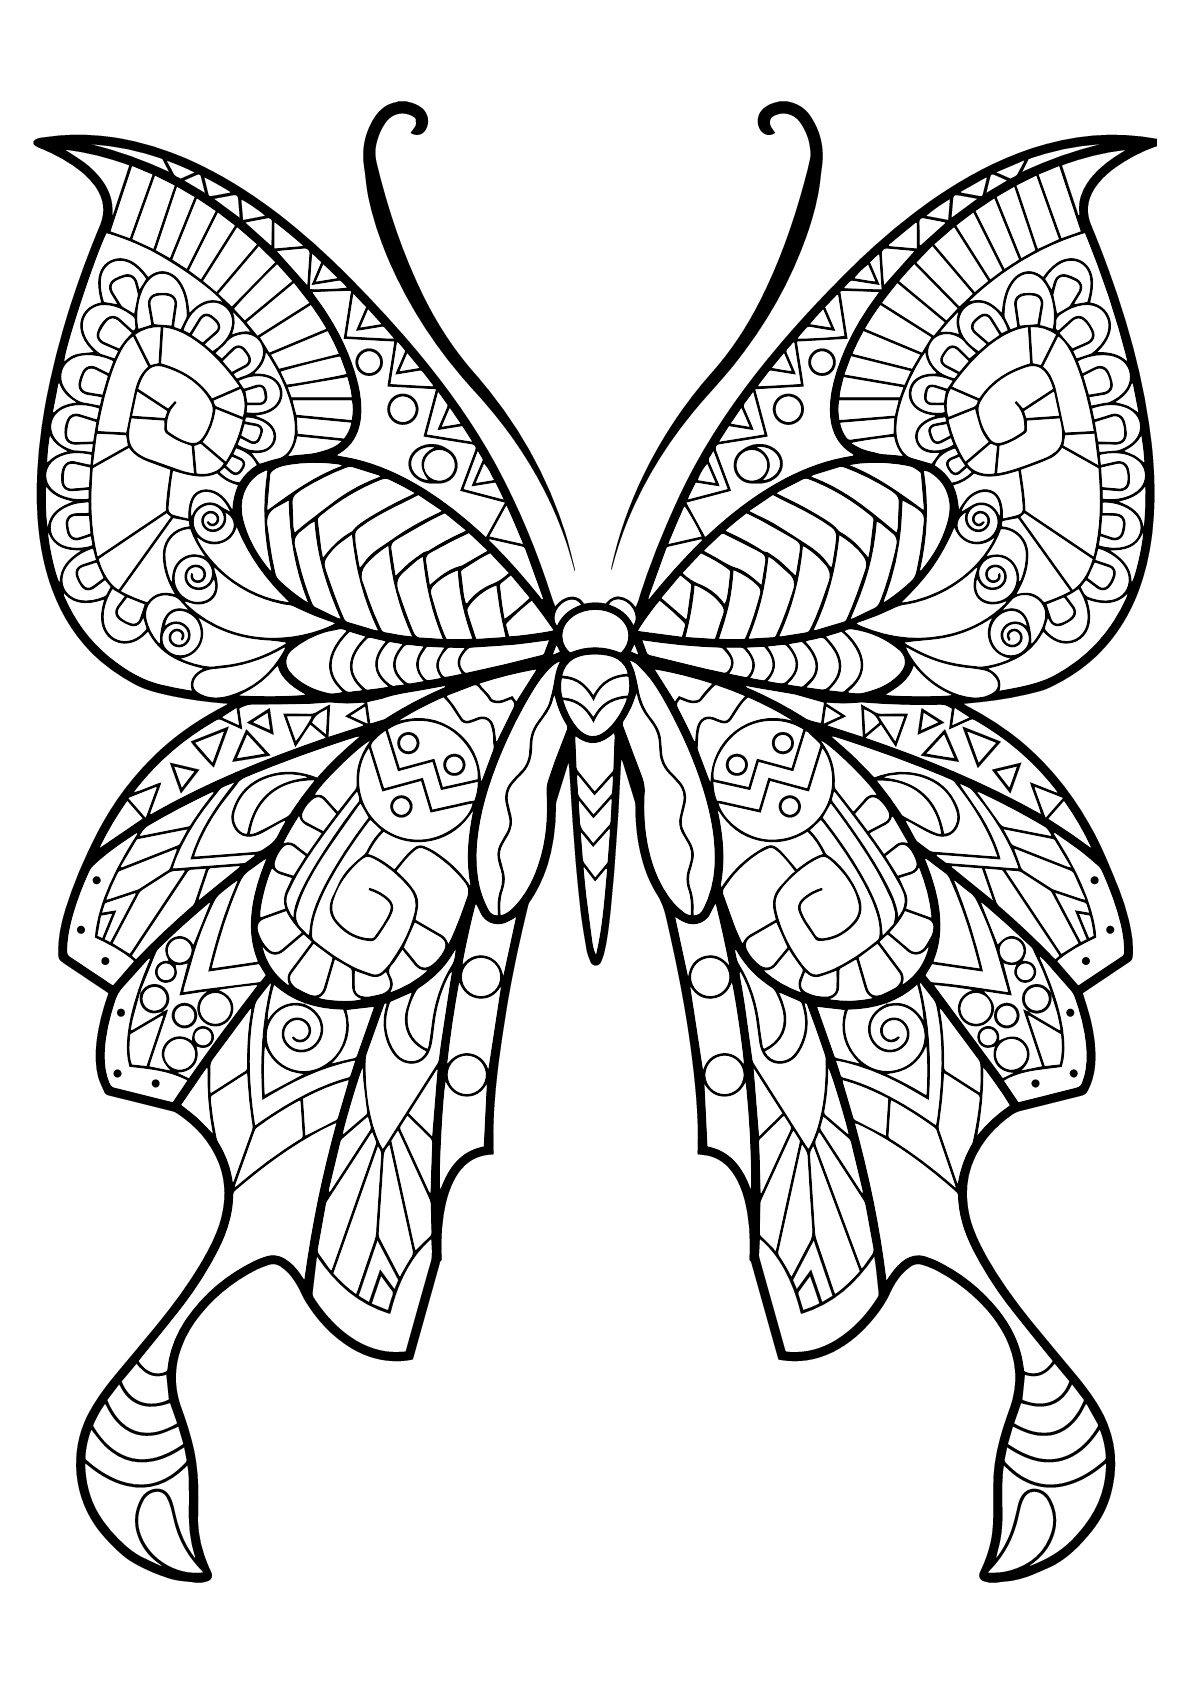 butterfly coloring sheet printable butterfly coloring pages coloring sheet butterfly printable